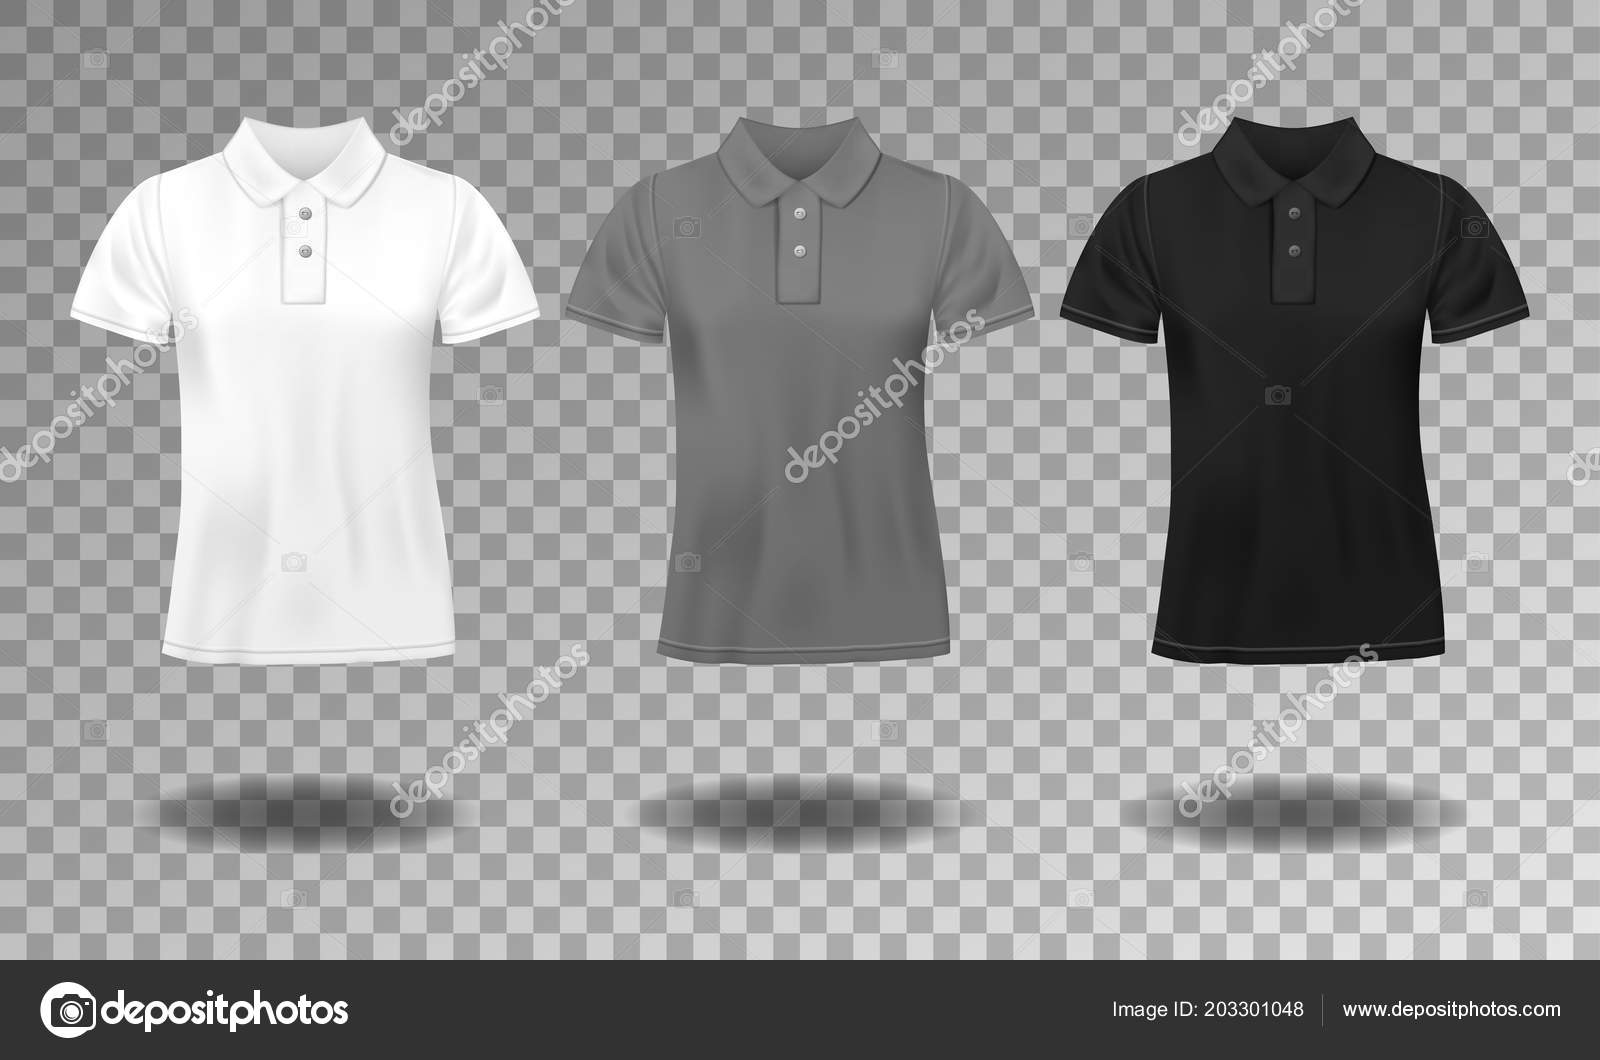 Black White And Gray Realistic Slim Male Polo T Shirt Design